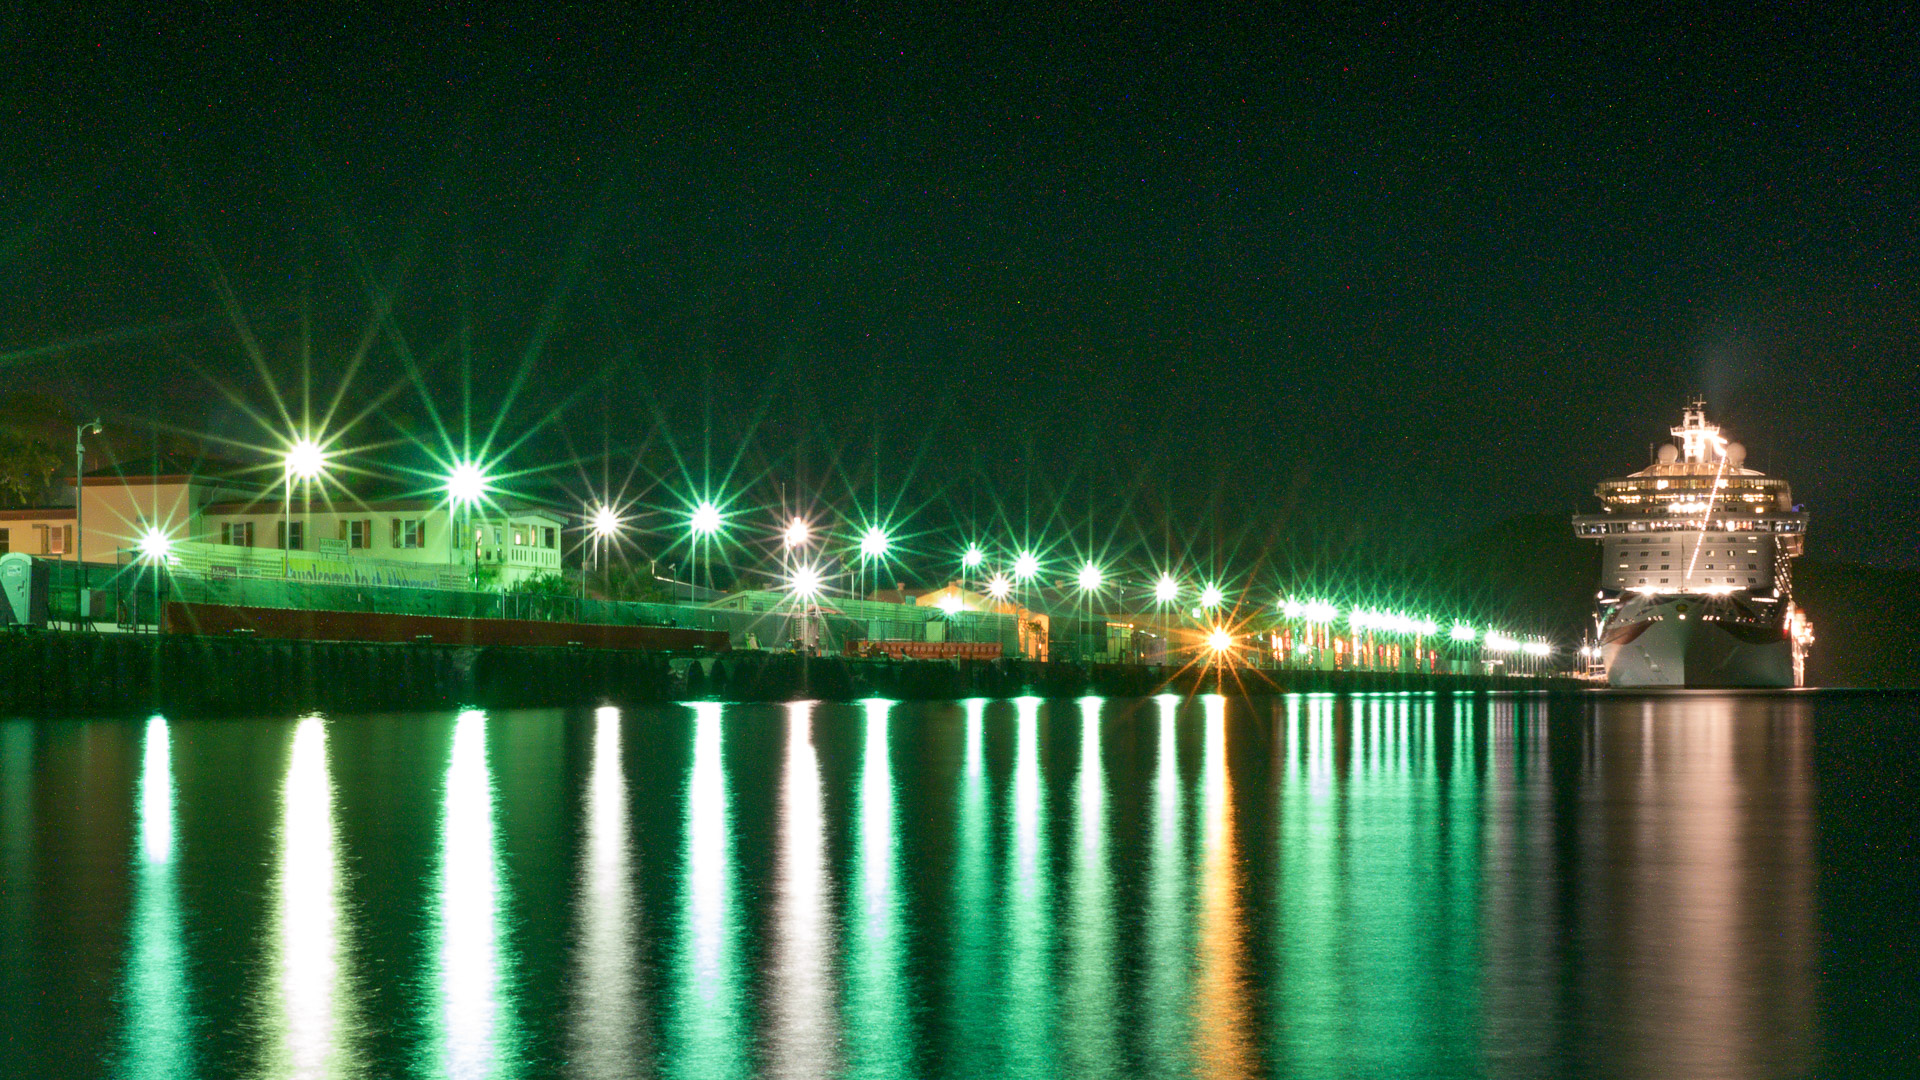 Long Exposure Noise Reduction (I'm Eating Crow)